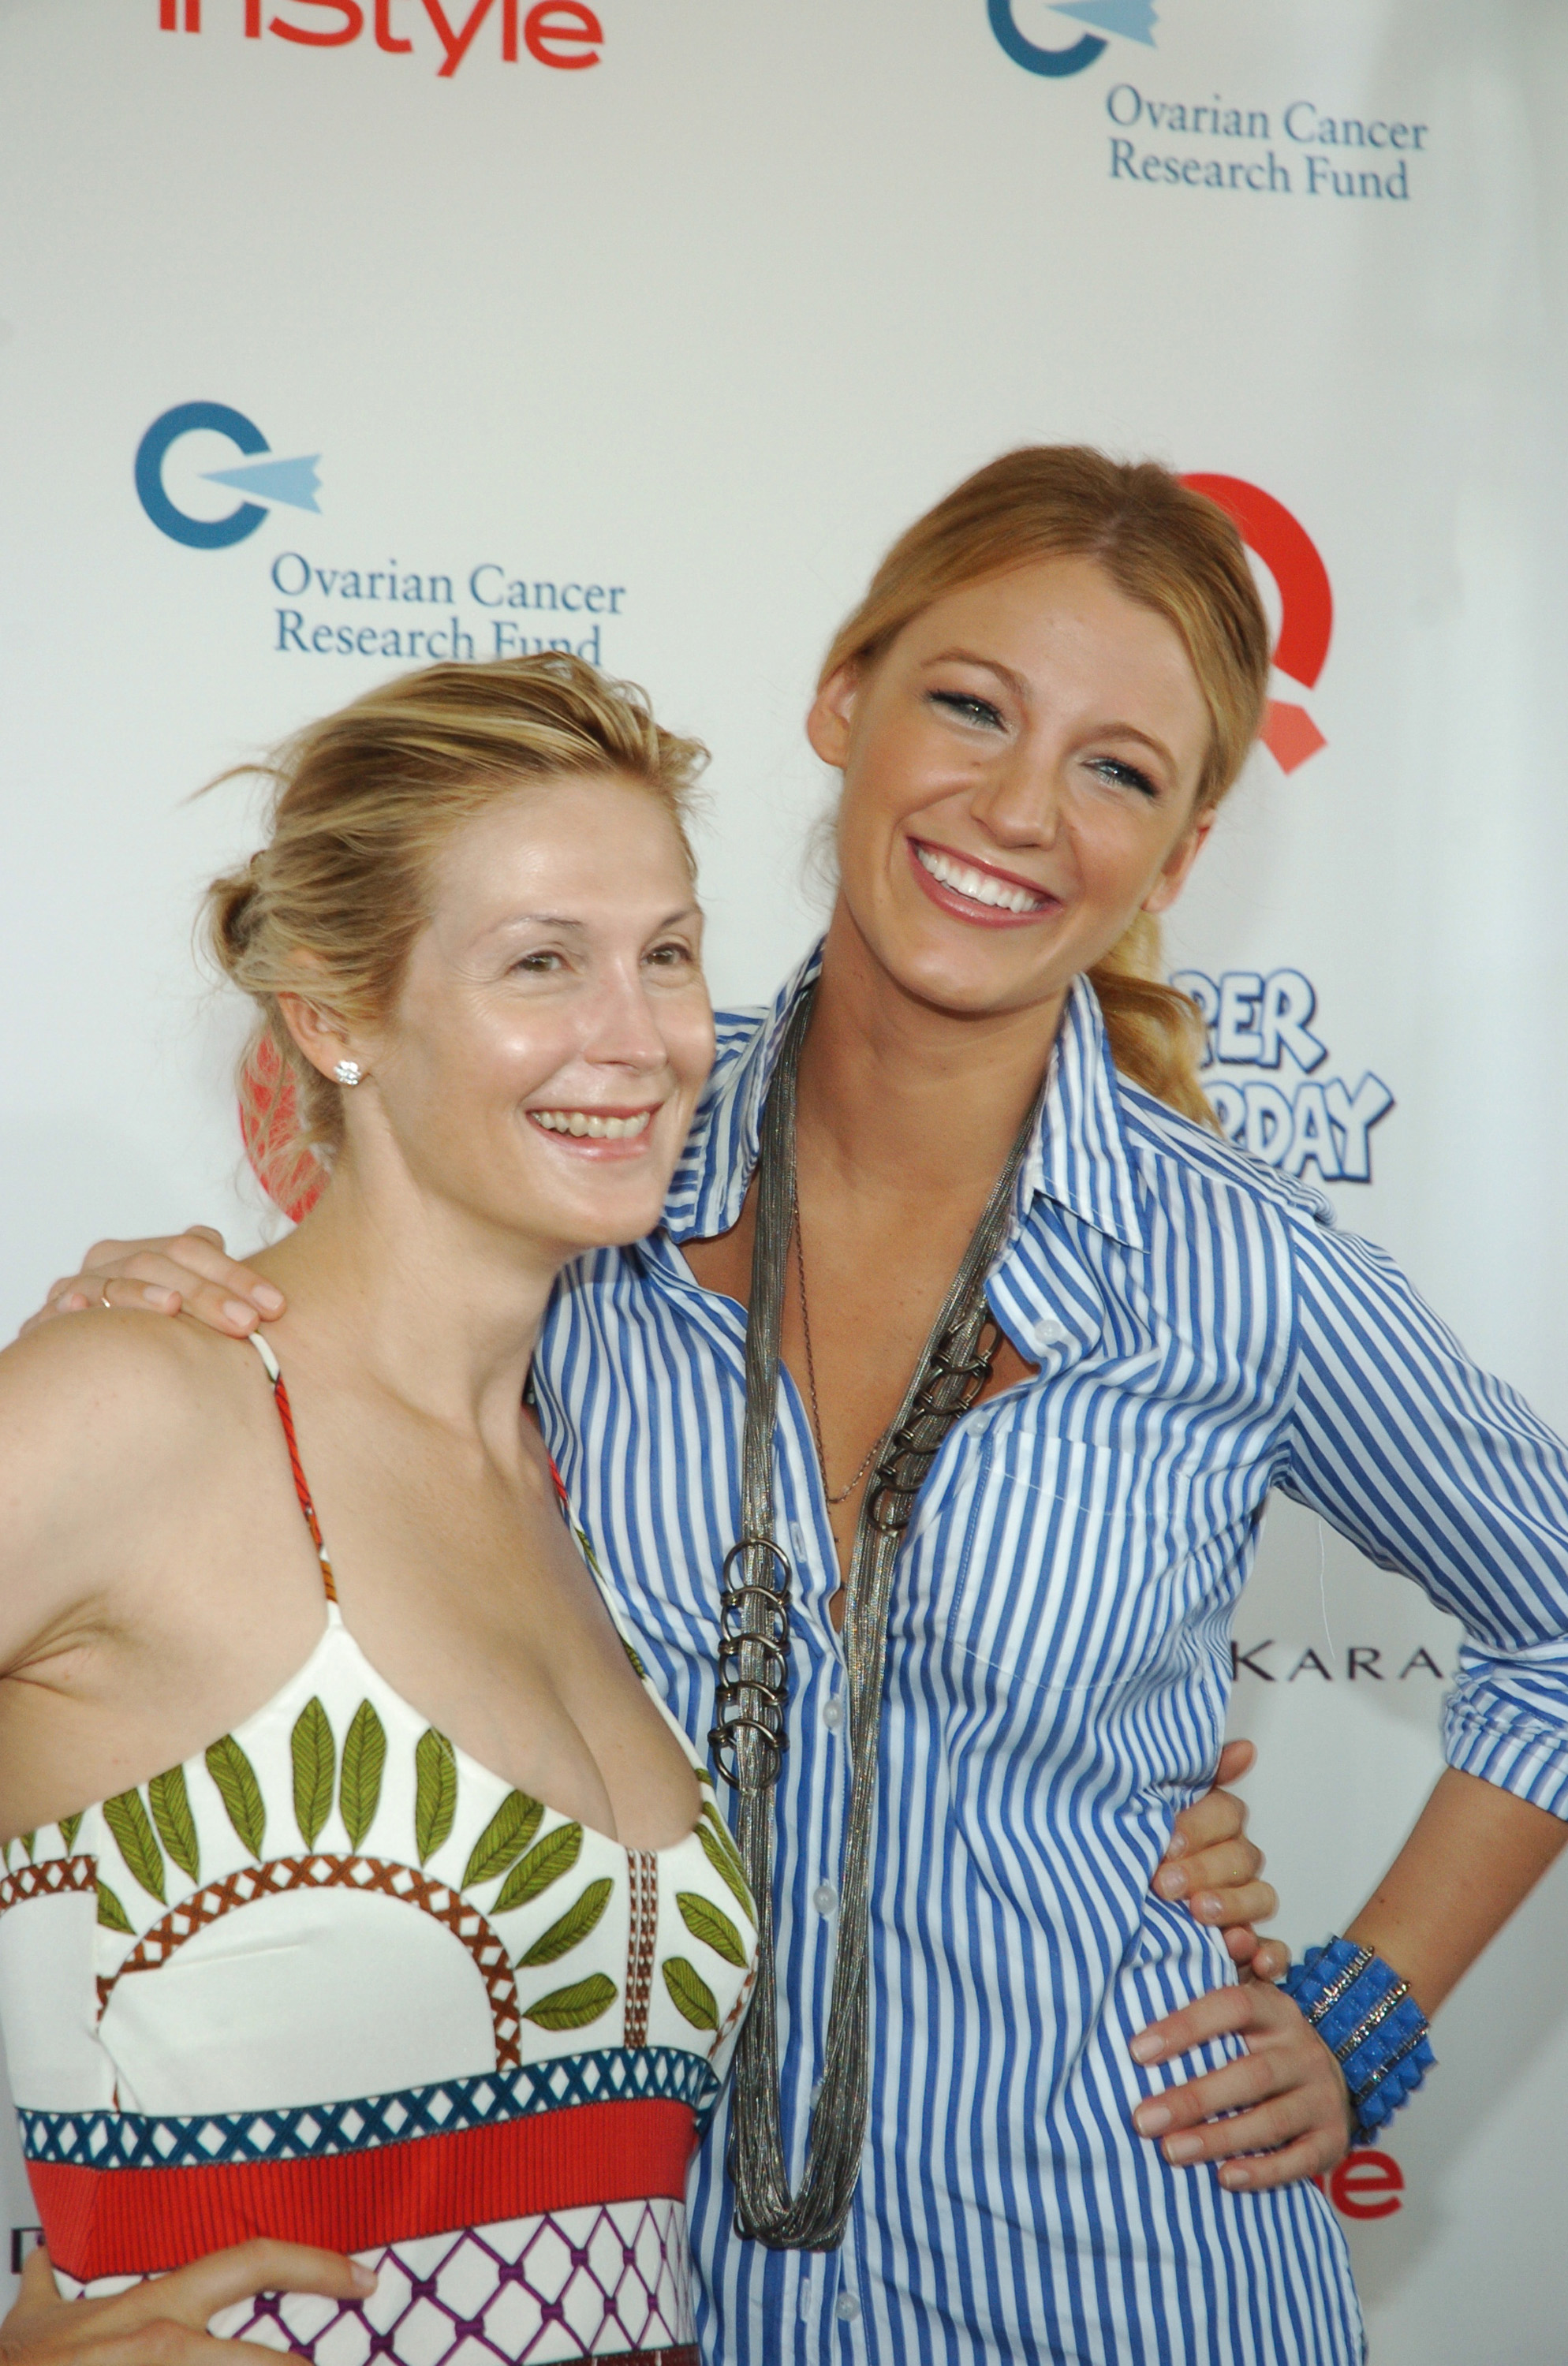 Onscreen mother-daughter duo Kelly Rutherford and Blake Lively posed for photos at an August 2009 event in New York.